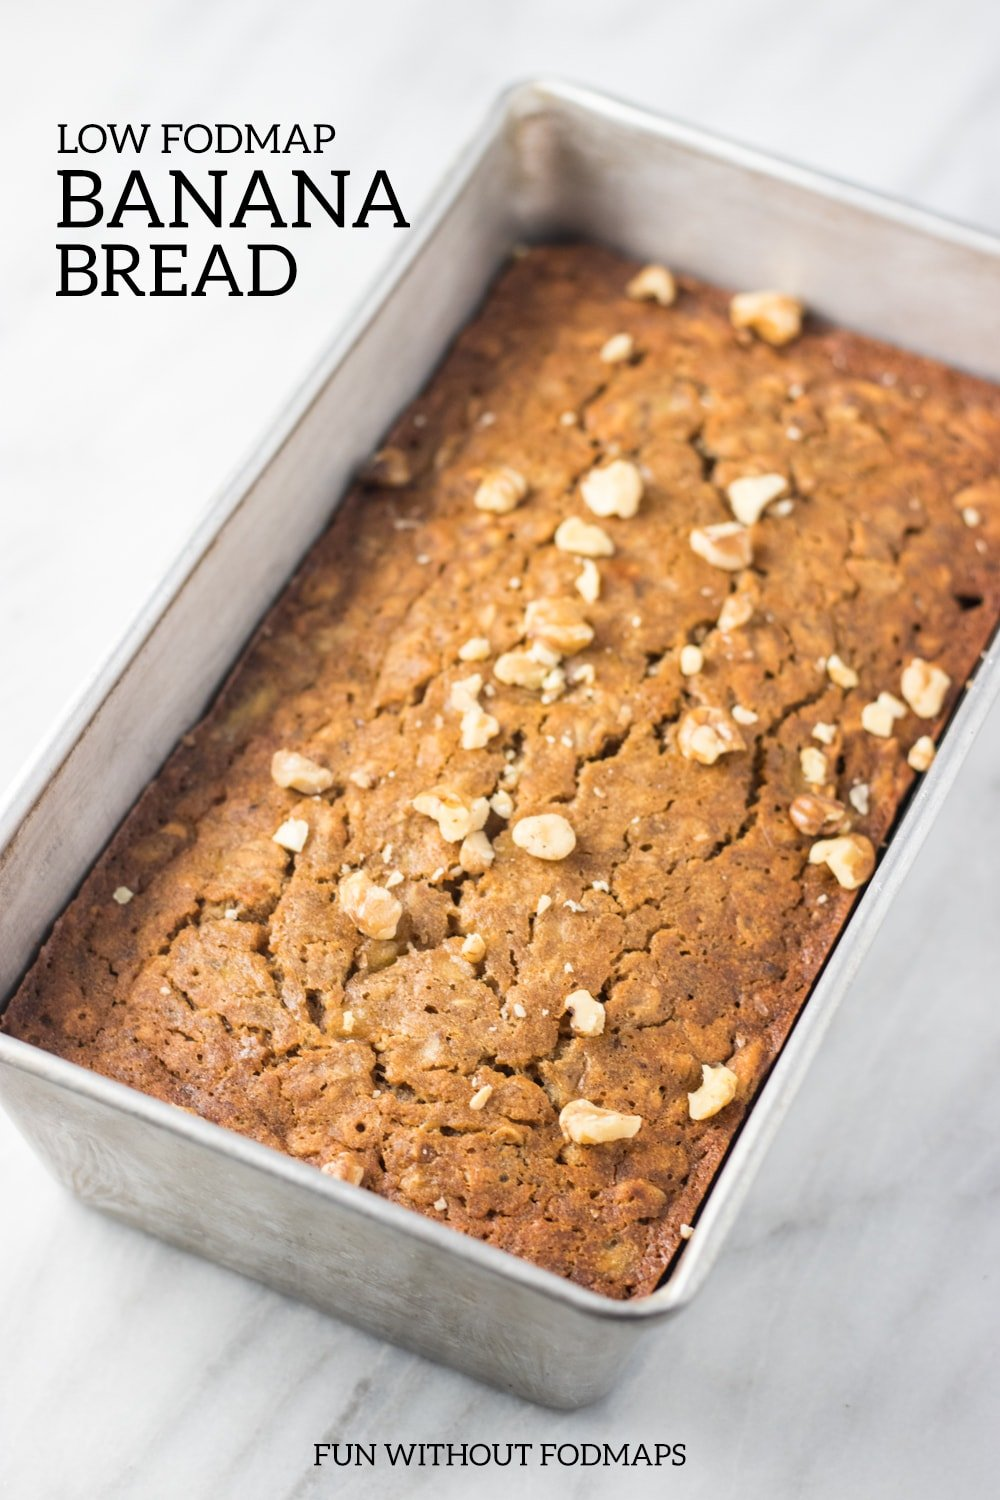 """A loaf pan filled with low FODMAP banana bread sitting on a white marble slab. Black text reads """"low FODMAP banana bread"""" at the top left and """"FUN WITHOUT FODMAPS"""" centered at the bottom."""